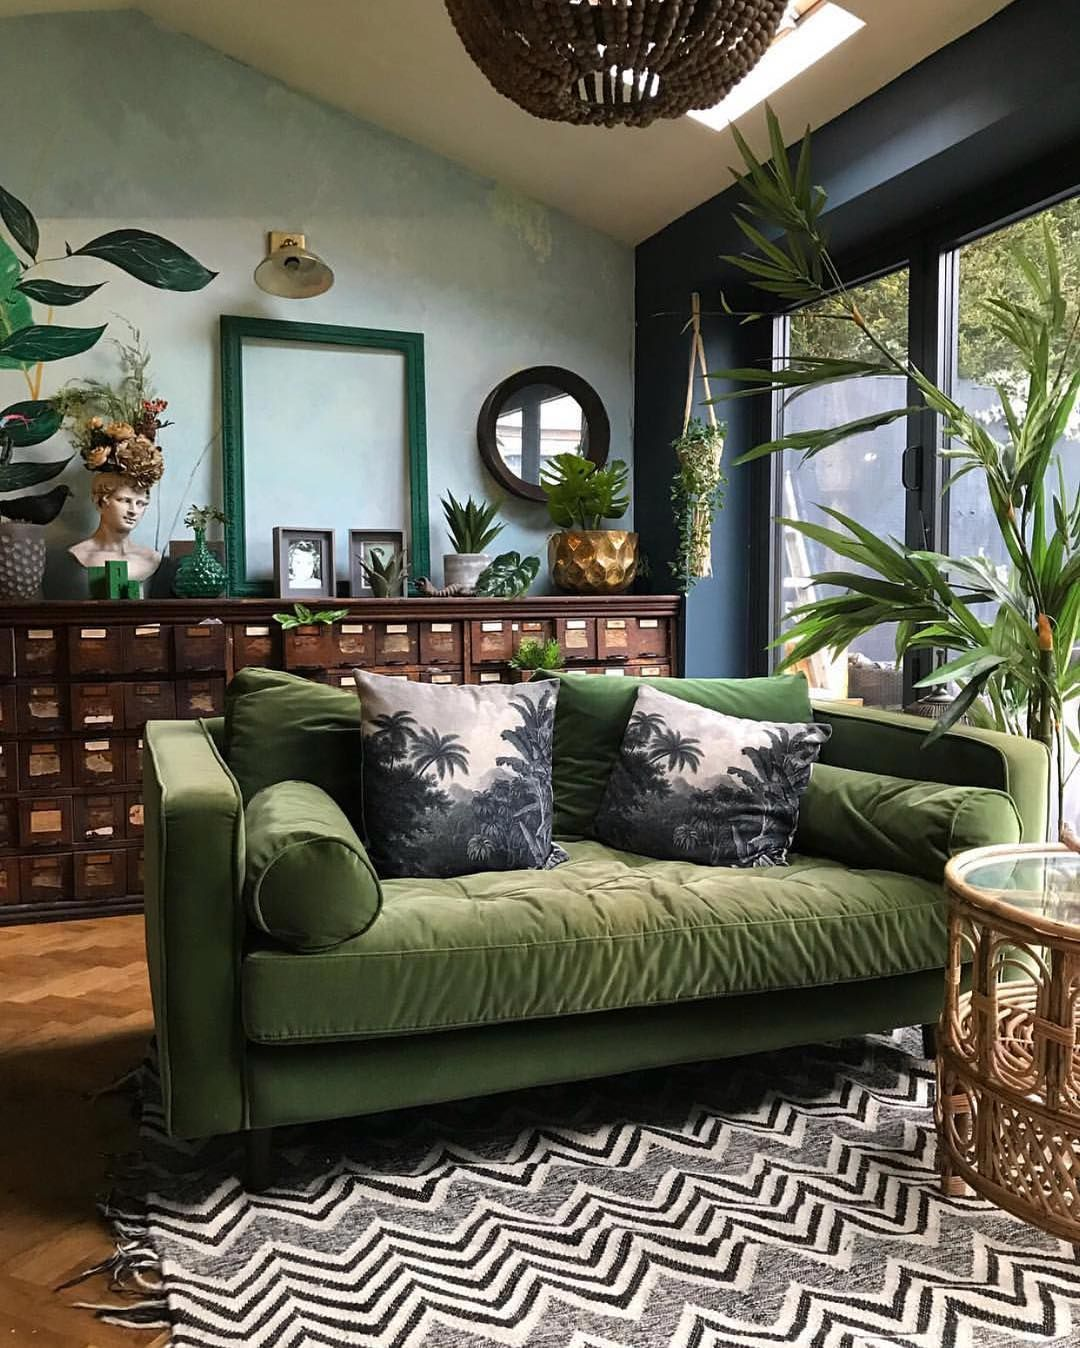 Green Sofa And Accents Plants And Vintage Library Chest In This